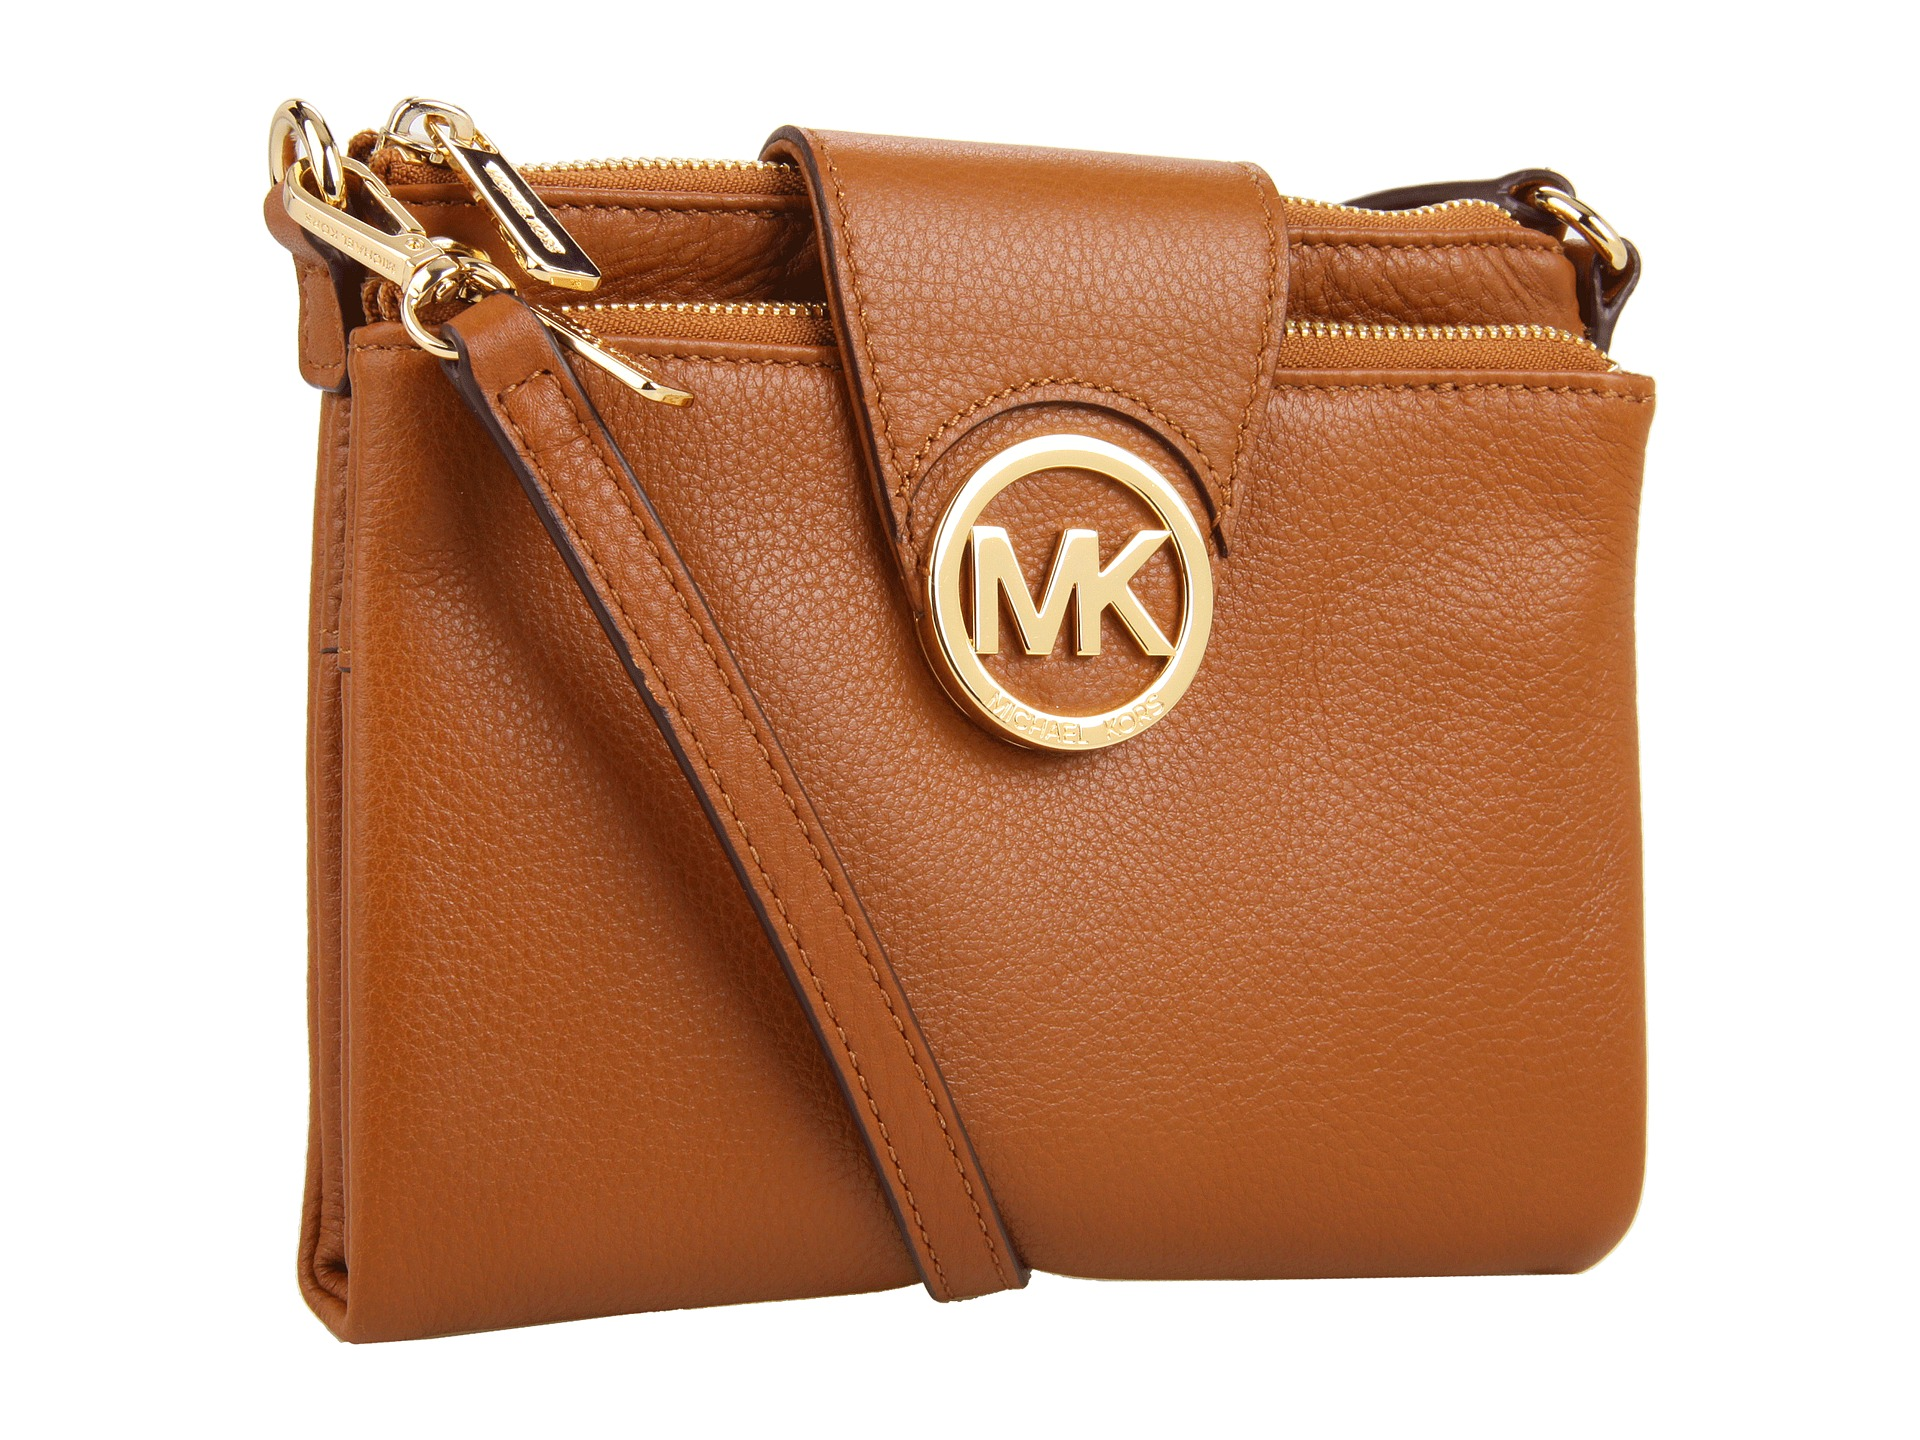 Michael Kors Crossbody Laukut : Michael kors fulton large crossbody black zappos